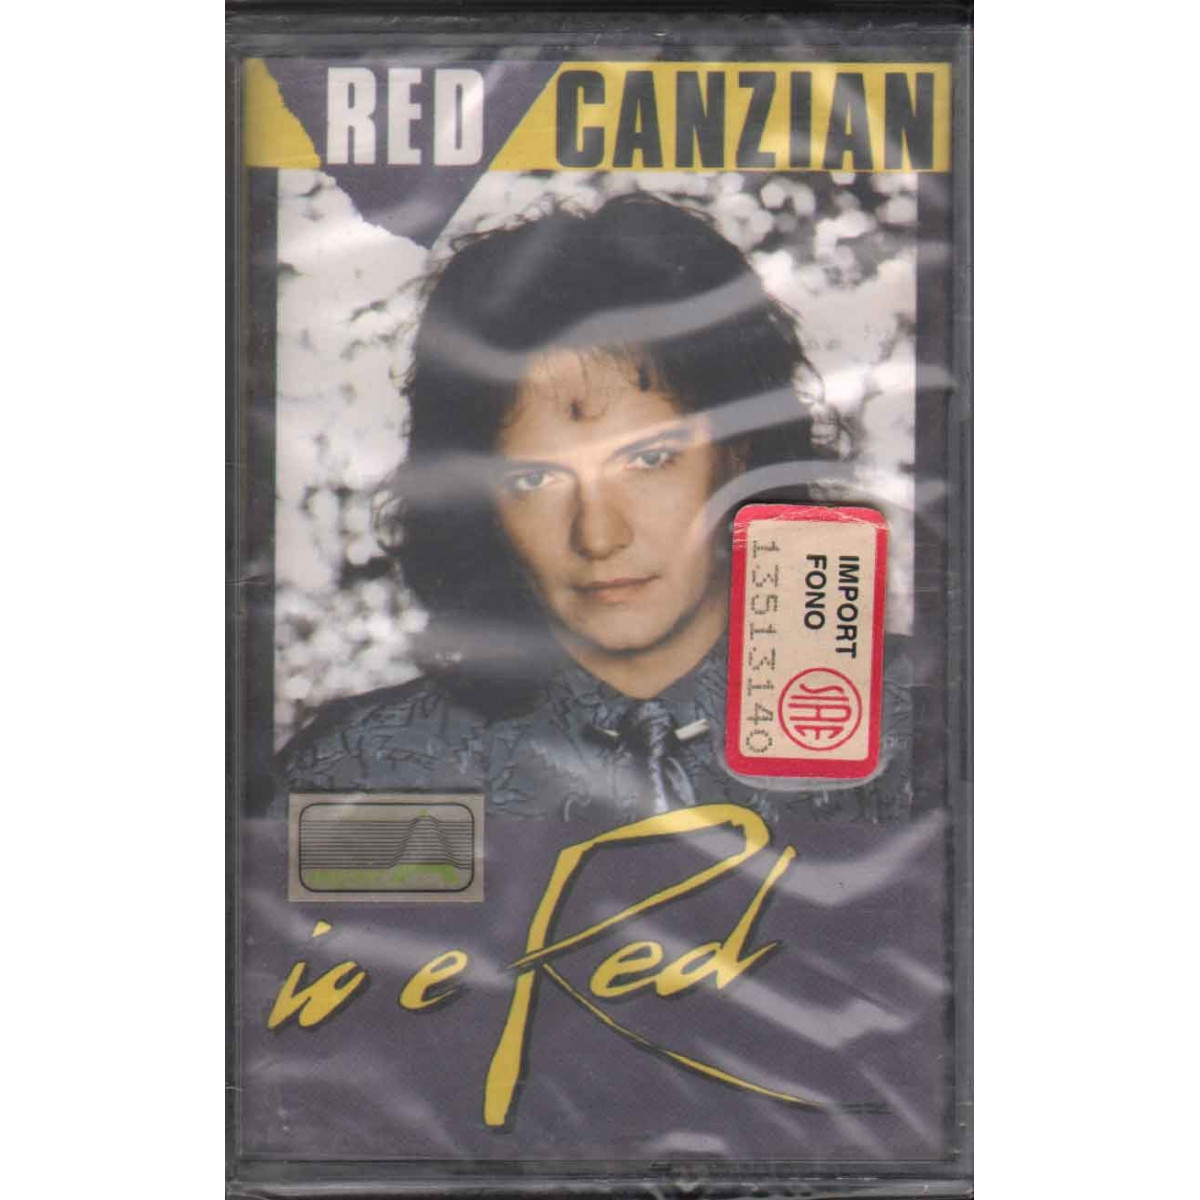 Red Canzian MC7 Io E Red / CGD 9031-77231-4‎ Sigillato